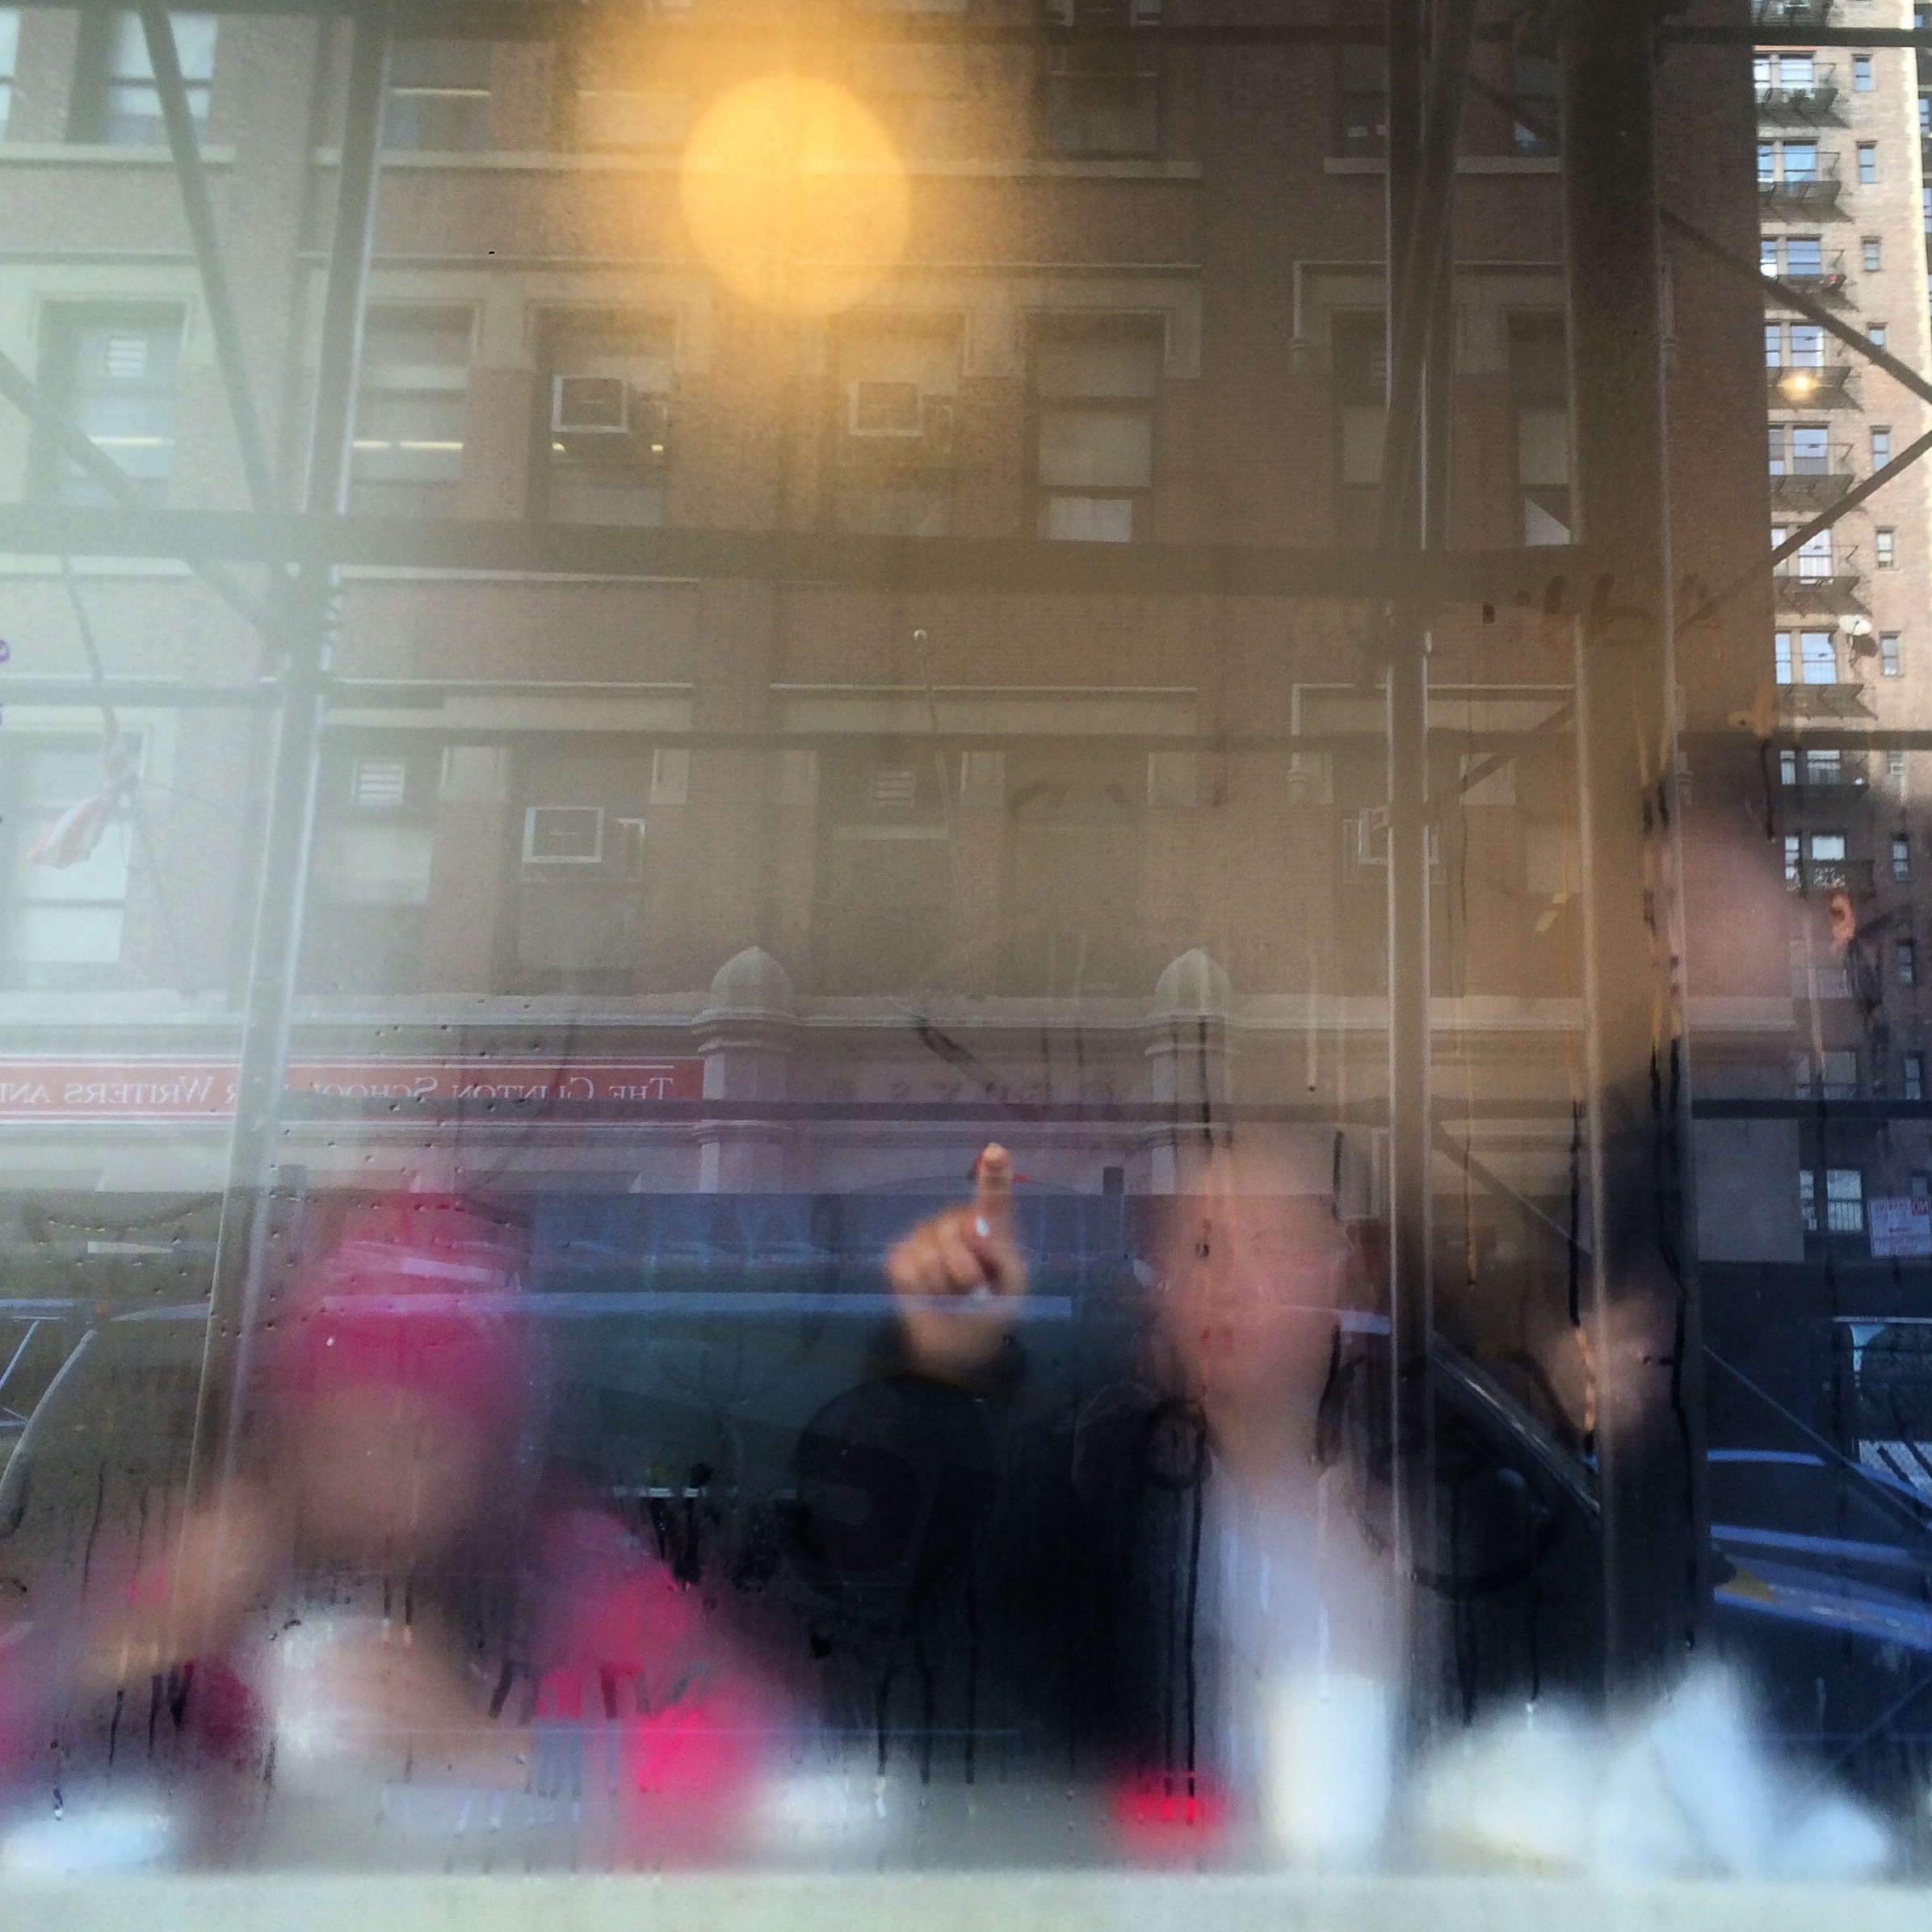 Drawing on a cafe window, Manhattan, 2015. (Kevin Martin)